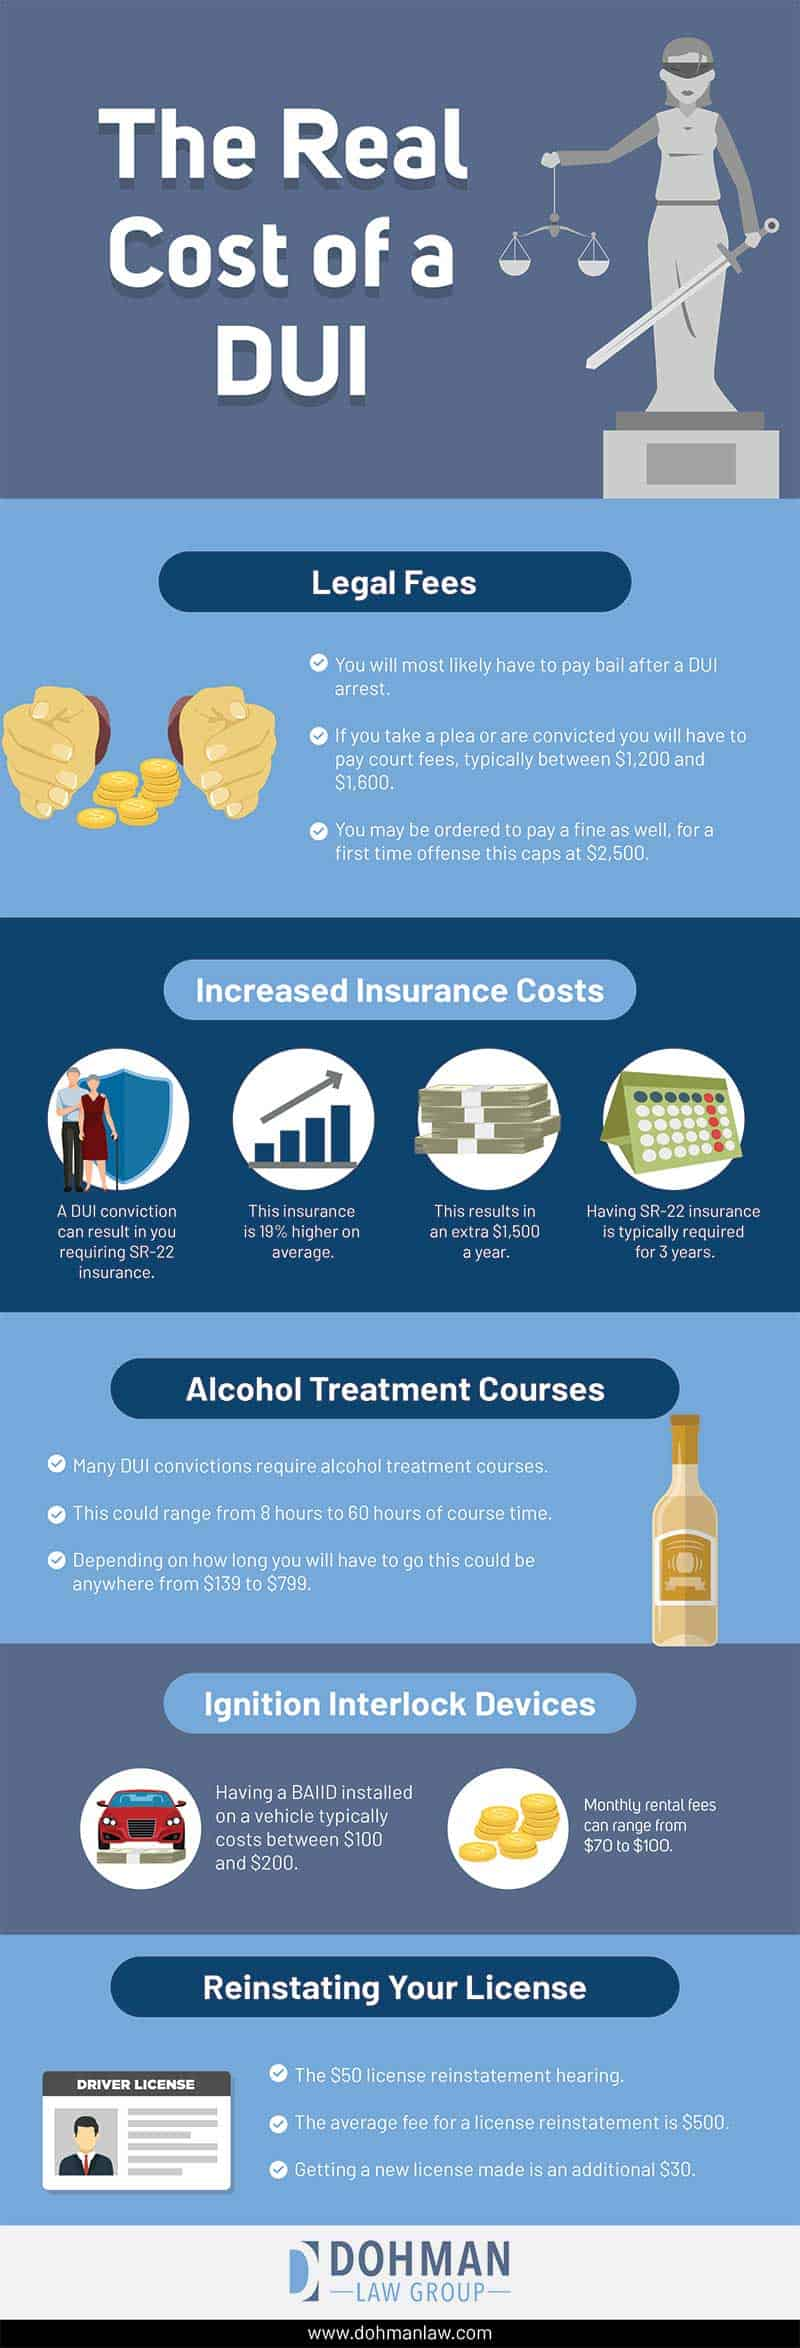 The Real Cost of a DUI - Infographic